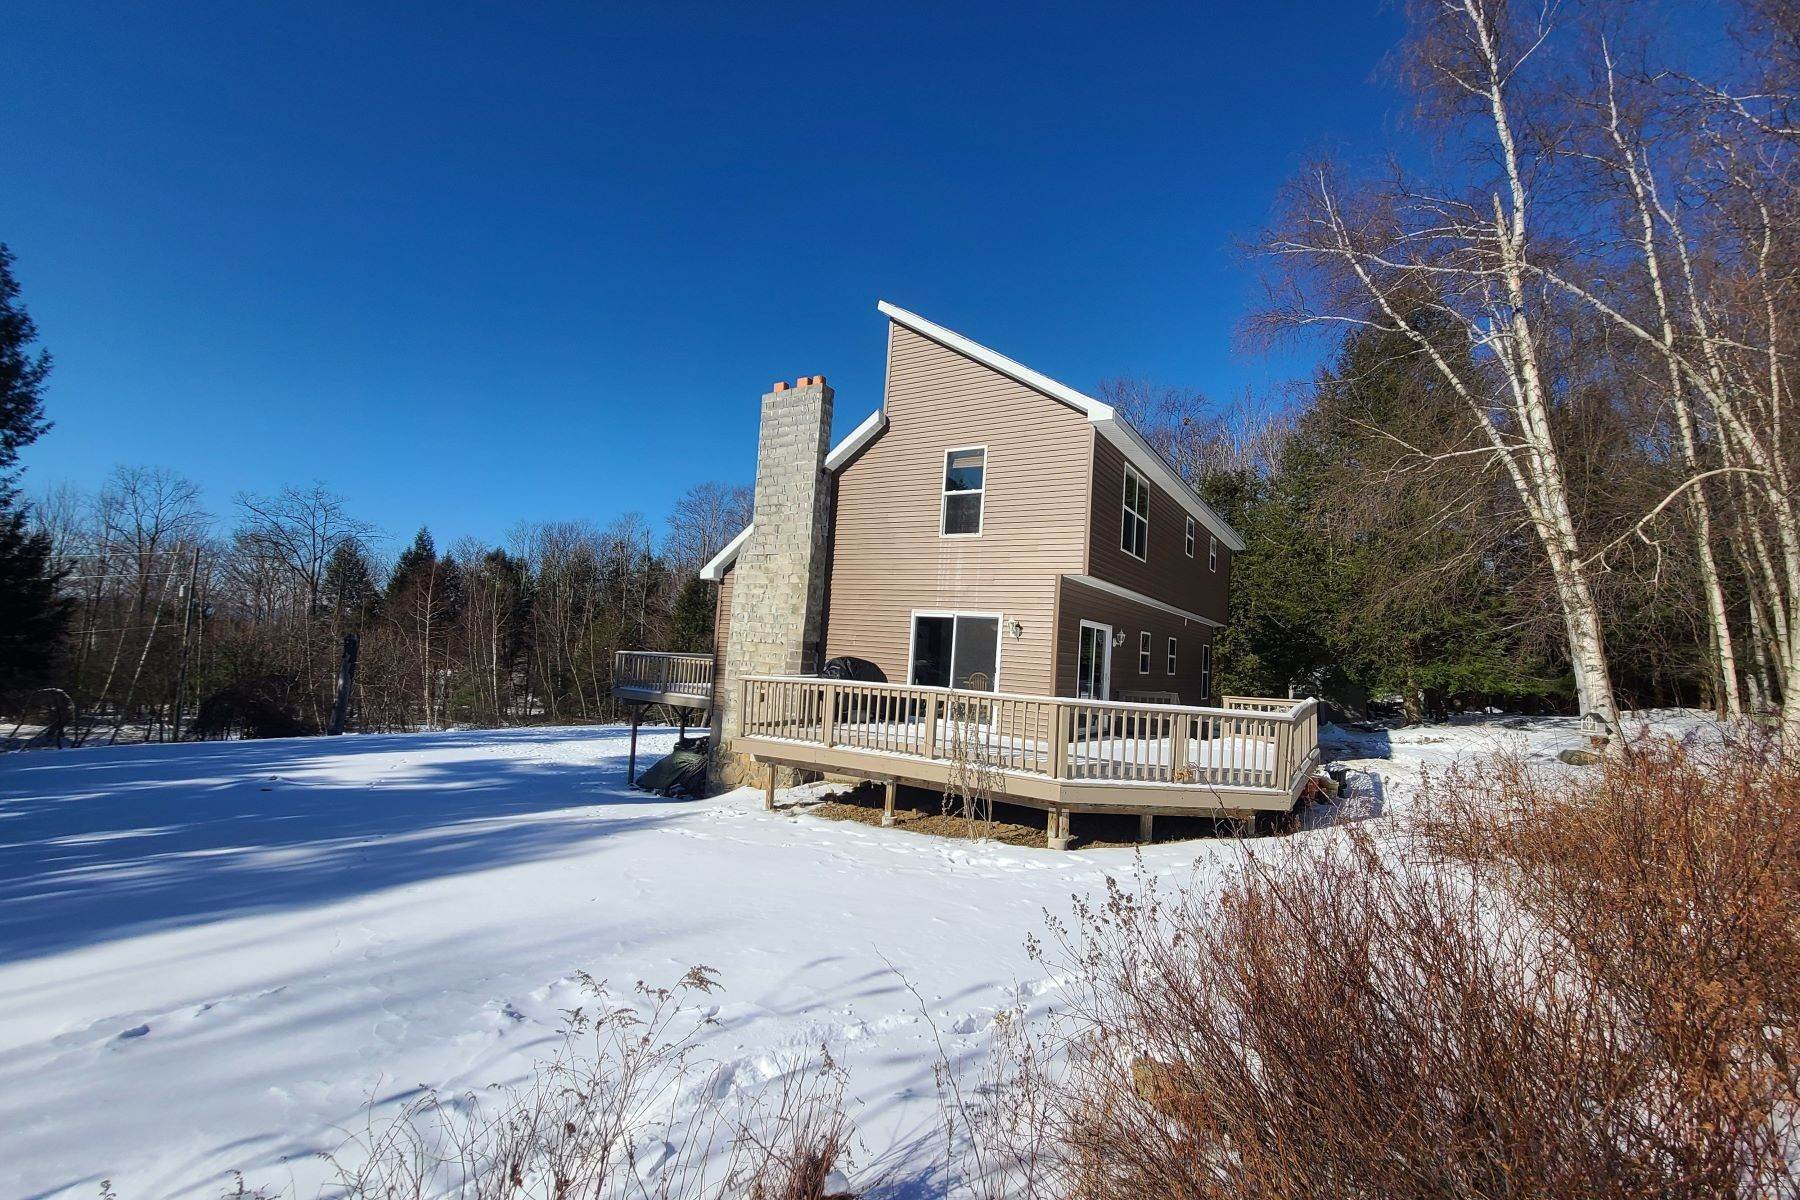 Single Family Homes for Sale at 430 Momrow Road, Sand Lake 430 Momrow Road Sand Lake, New York 12153 United States